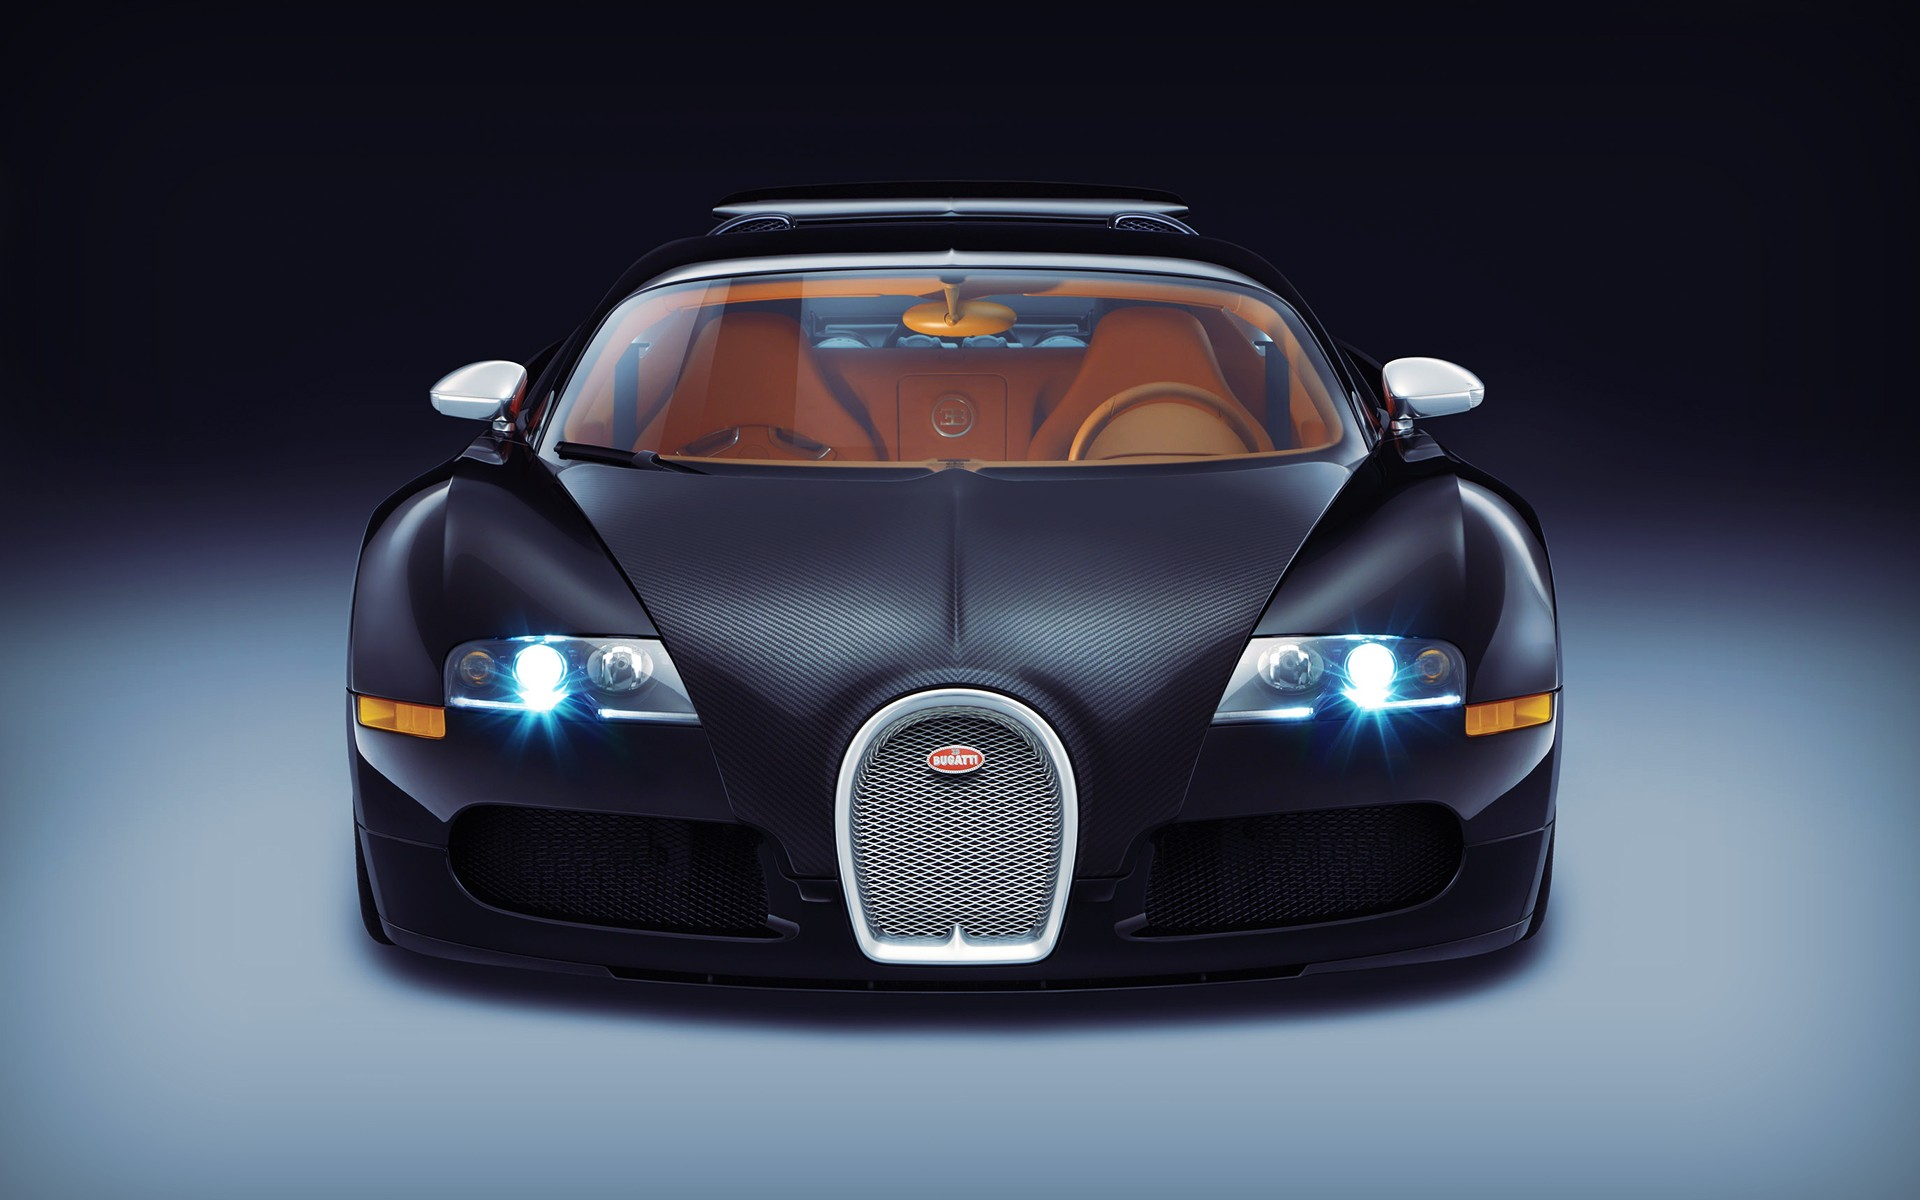 Daily Wallpaper Bugatti Veyron I Like To Waste My Time